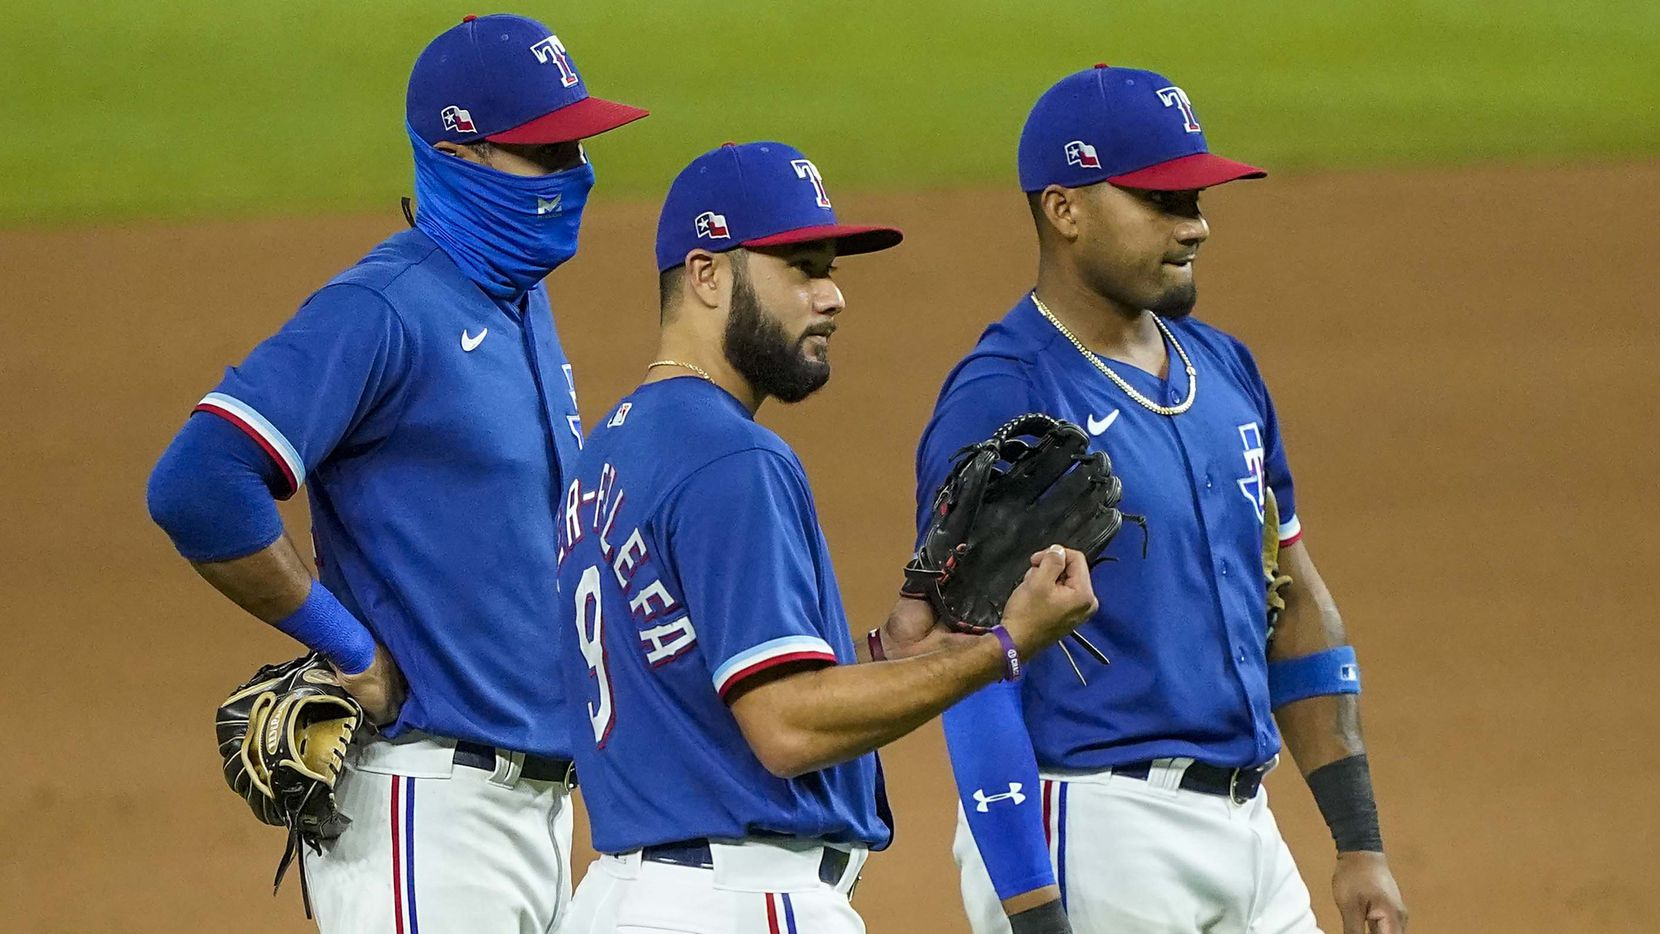 Texas Rangers infielder Isiah Kiner-Falefa (center) watches pitcher Derek Law warm up after a pitching change with Yadiel Rivera (left) and Andy Ibanez during the fifth inning of an exhibition game against the Colorado Rockies at Globe Life Field on Wednesday, July 22, 2020.